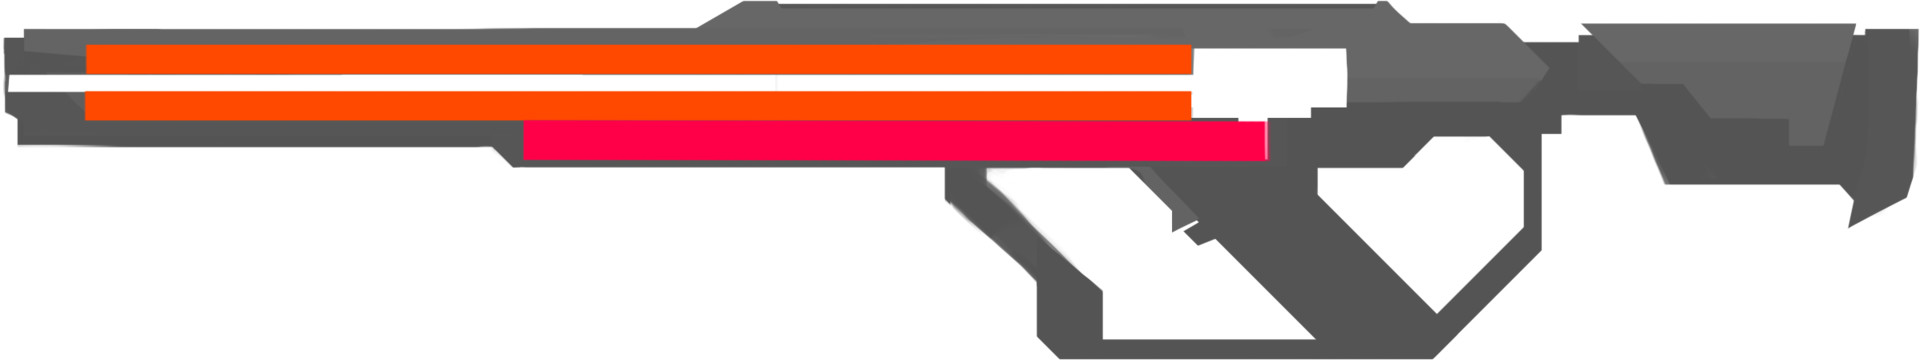 A lot of the criticism I often got when designing these weapons were ergonomics, so I took more care in implementing them. The orange denotes the railgun barrel, and the red represents the location of the horizontal magazine.